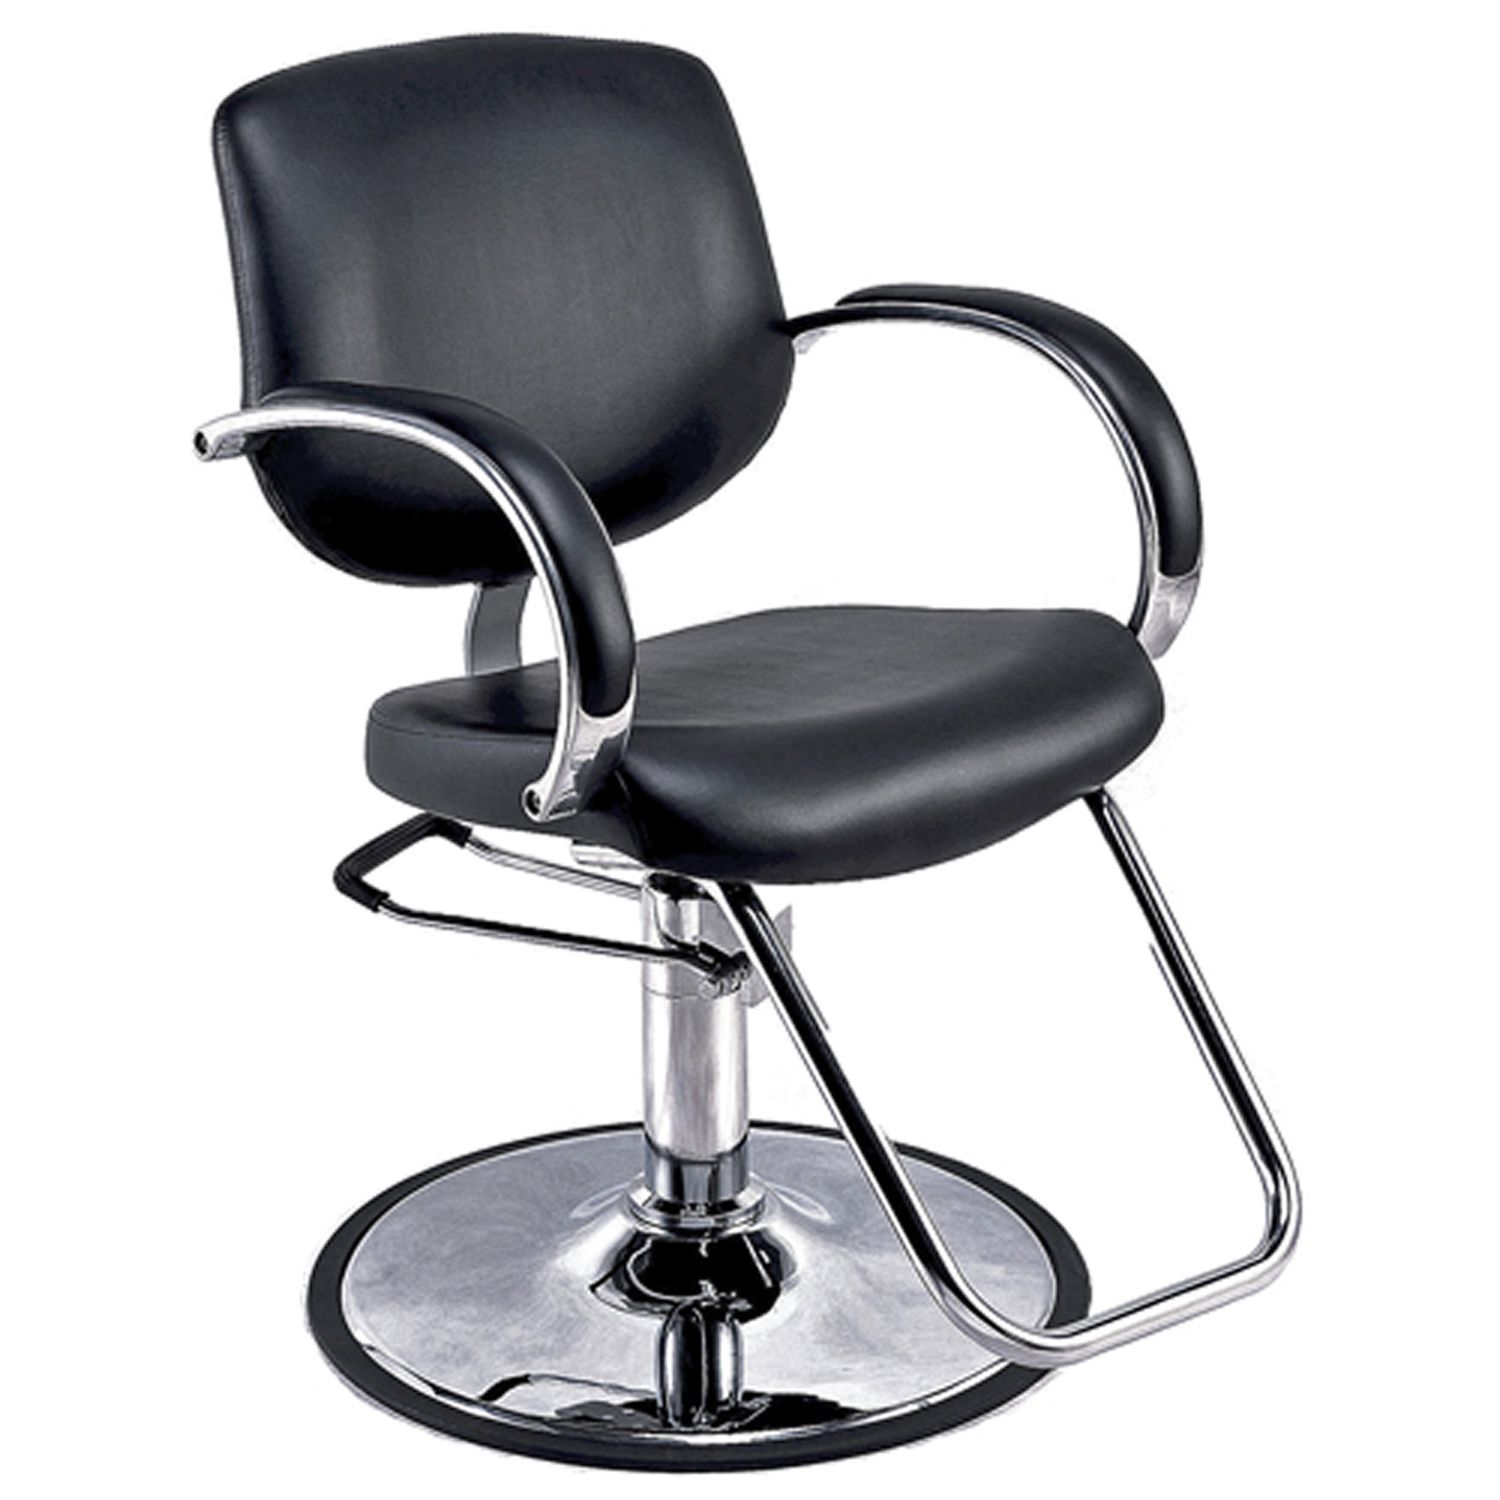 Elegant barber chairs for sale for salon furniture with cheap barber chairs for sale